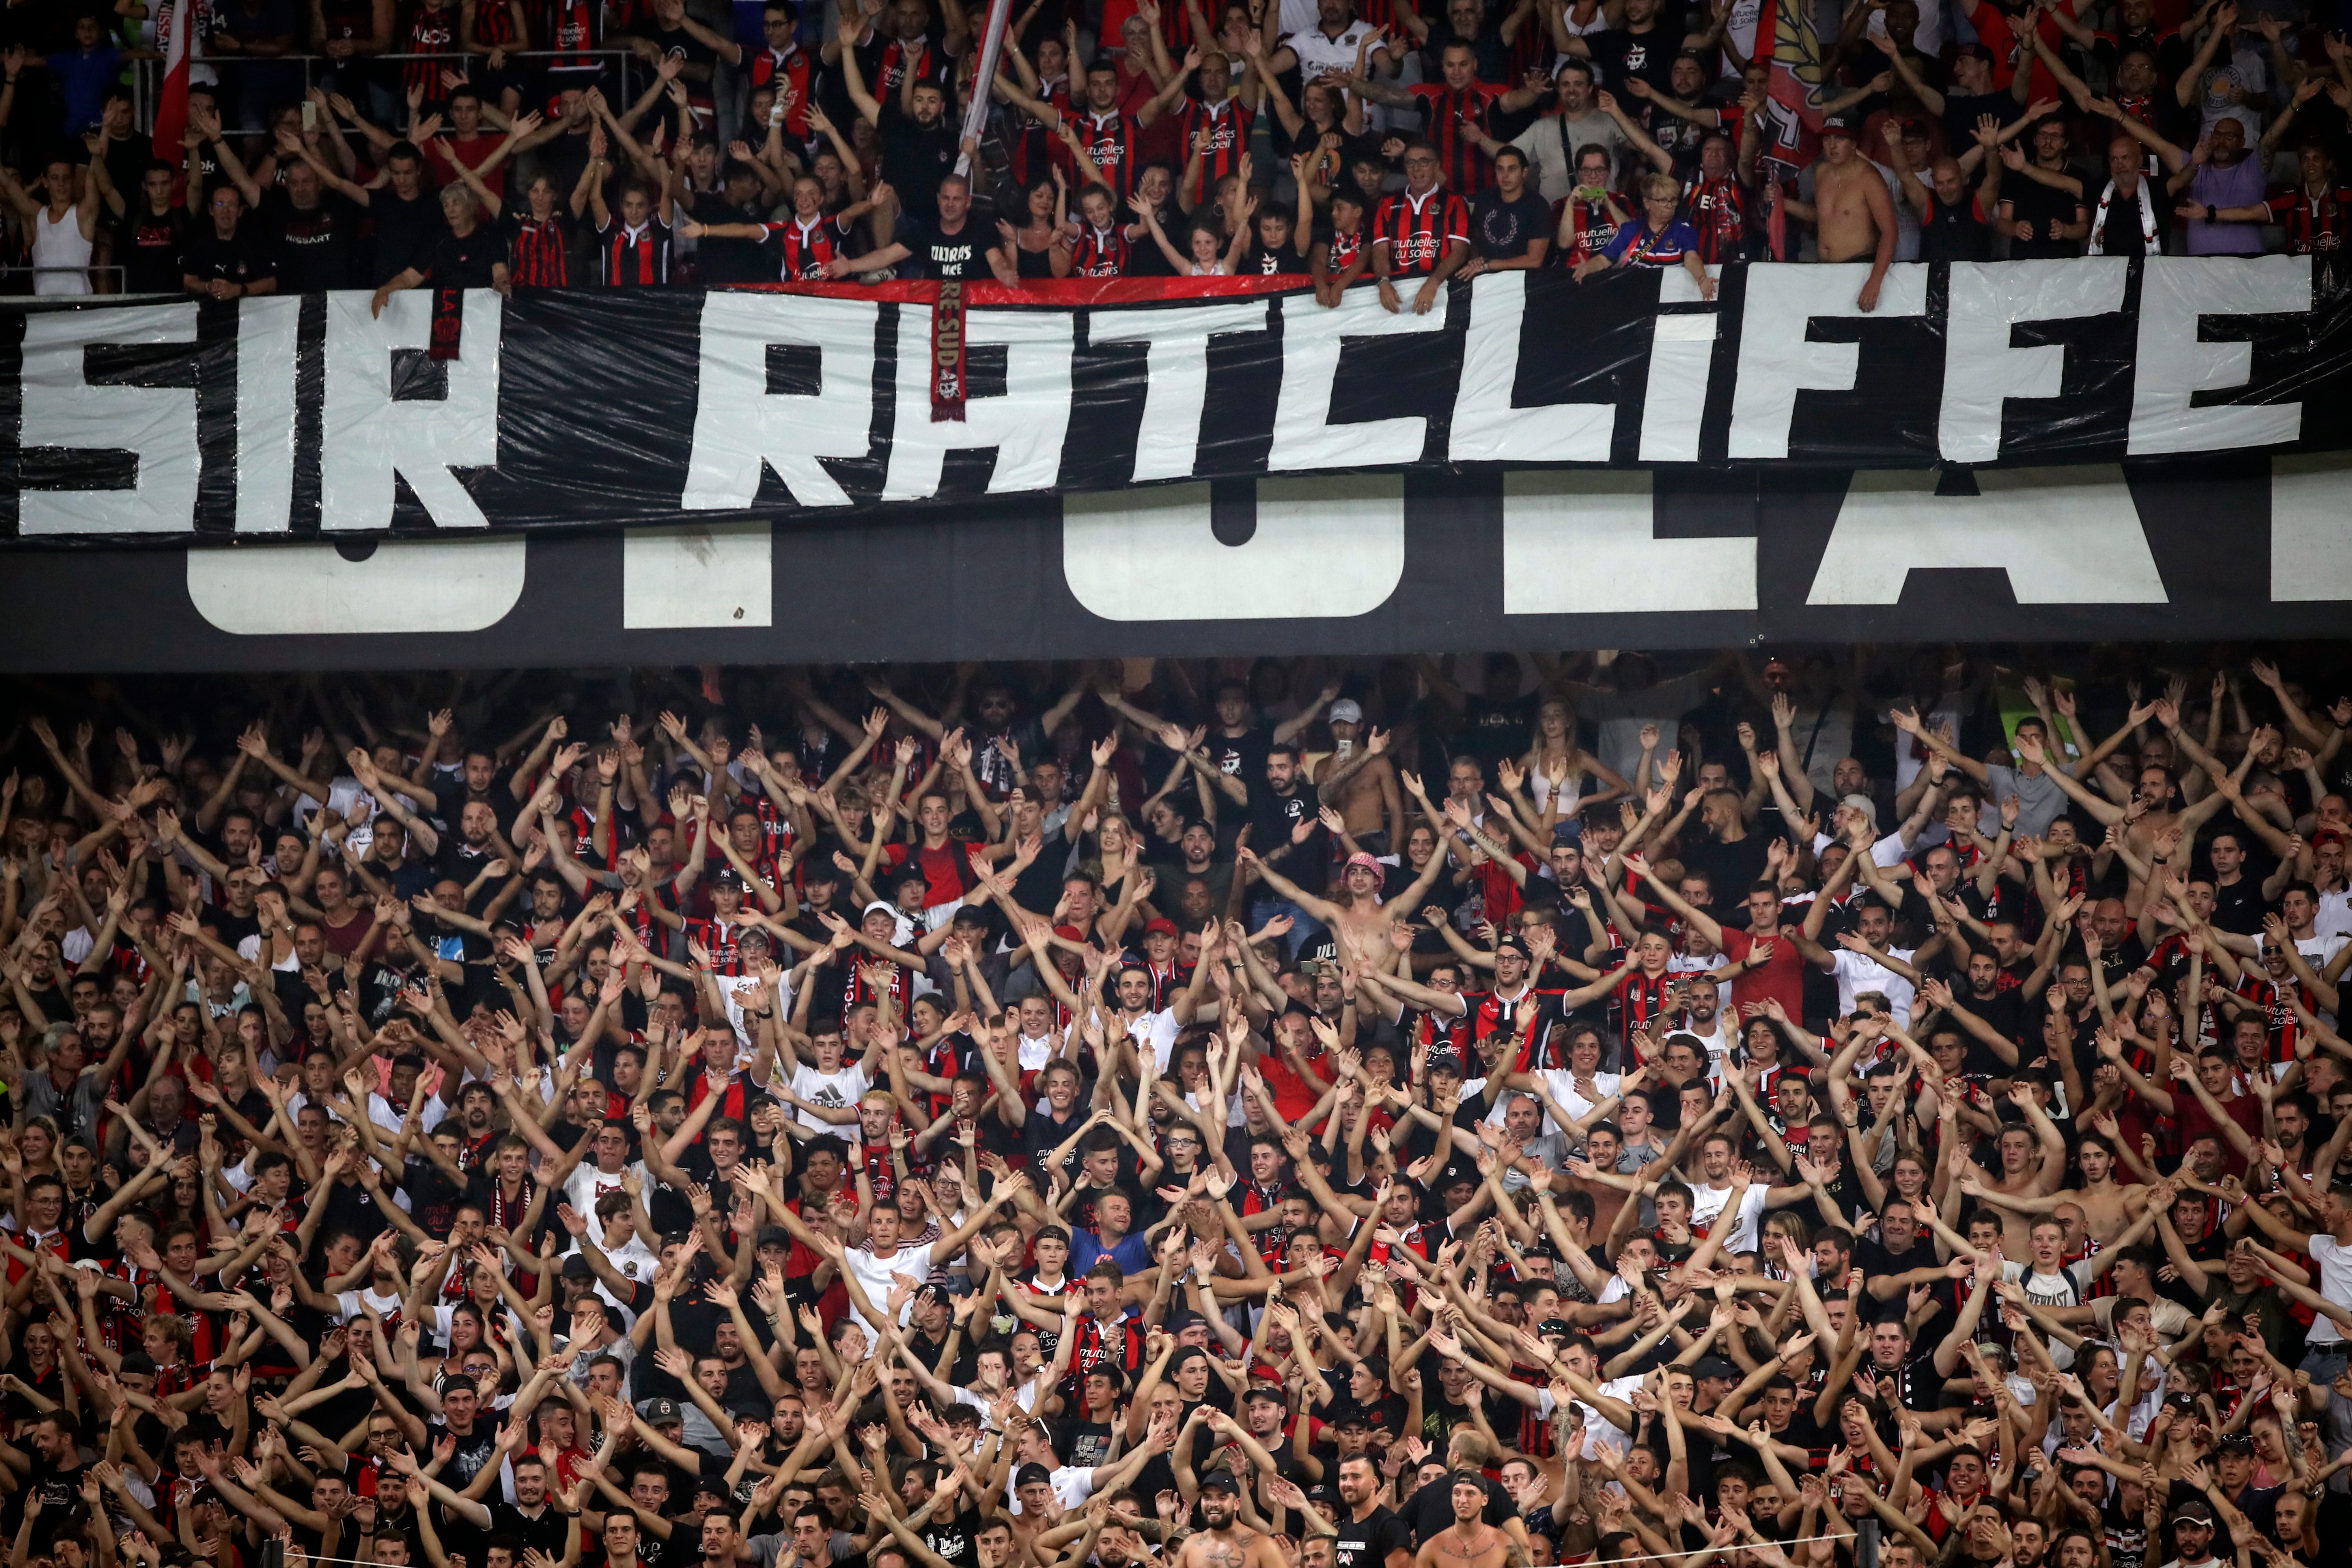 """Nice soccer fans cheer beneath a banner that reads """"Sir Ratcliffe"""" during the French League One soccer match."""